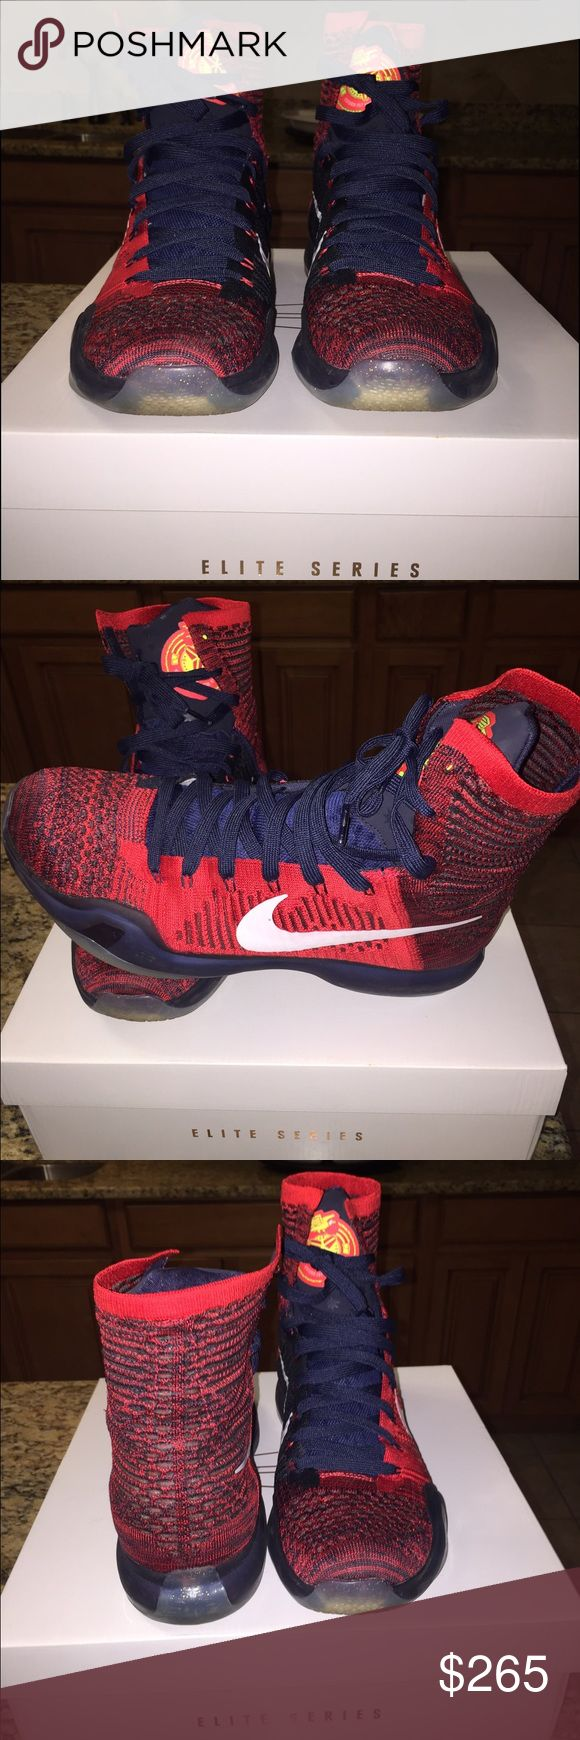 Limited Edition Kobe Bryant Elite high tops👟 Not sold in stores Limited edition,  in almost perfect condition red and navy blue Kobe X Elite high tops 👟 Nike Shoes Sneakers